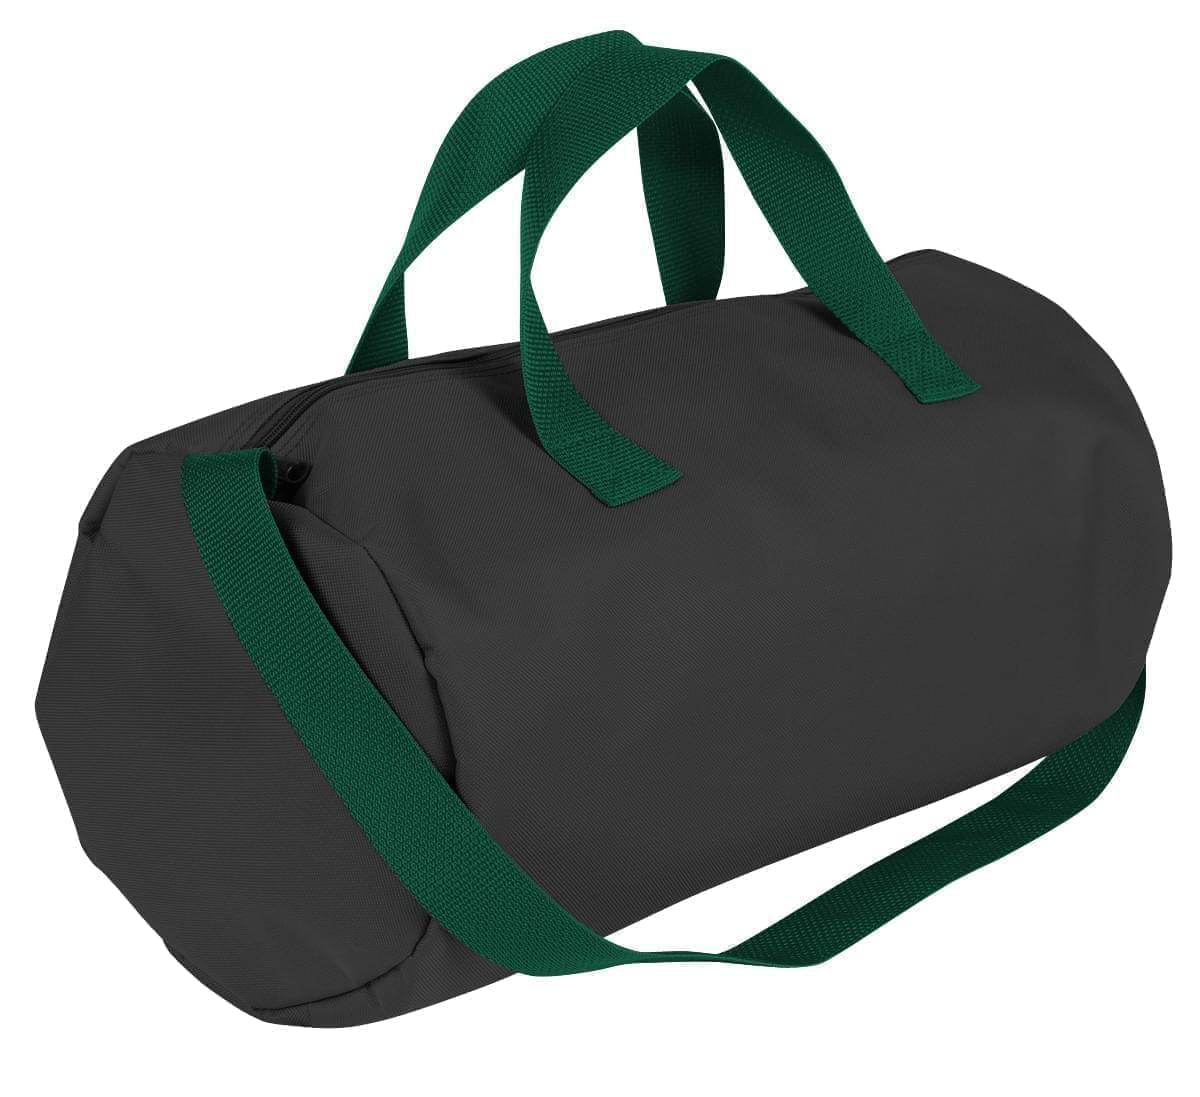 USA Made Nylon Poly Gym Roll Bags, Black-Hunter Green, ROCX31AAOV